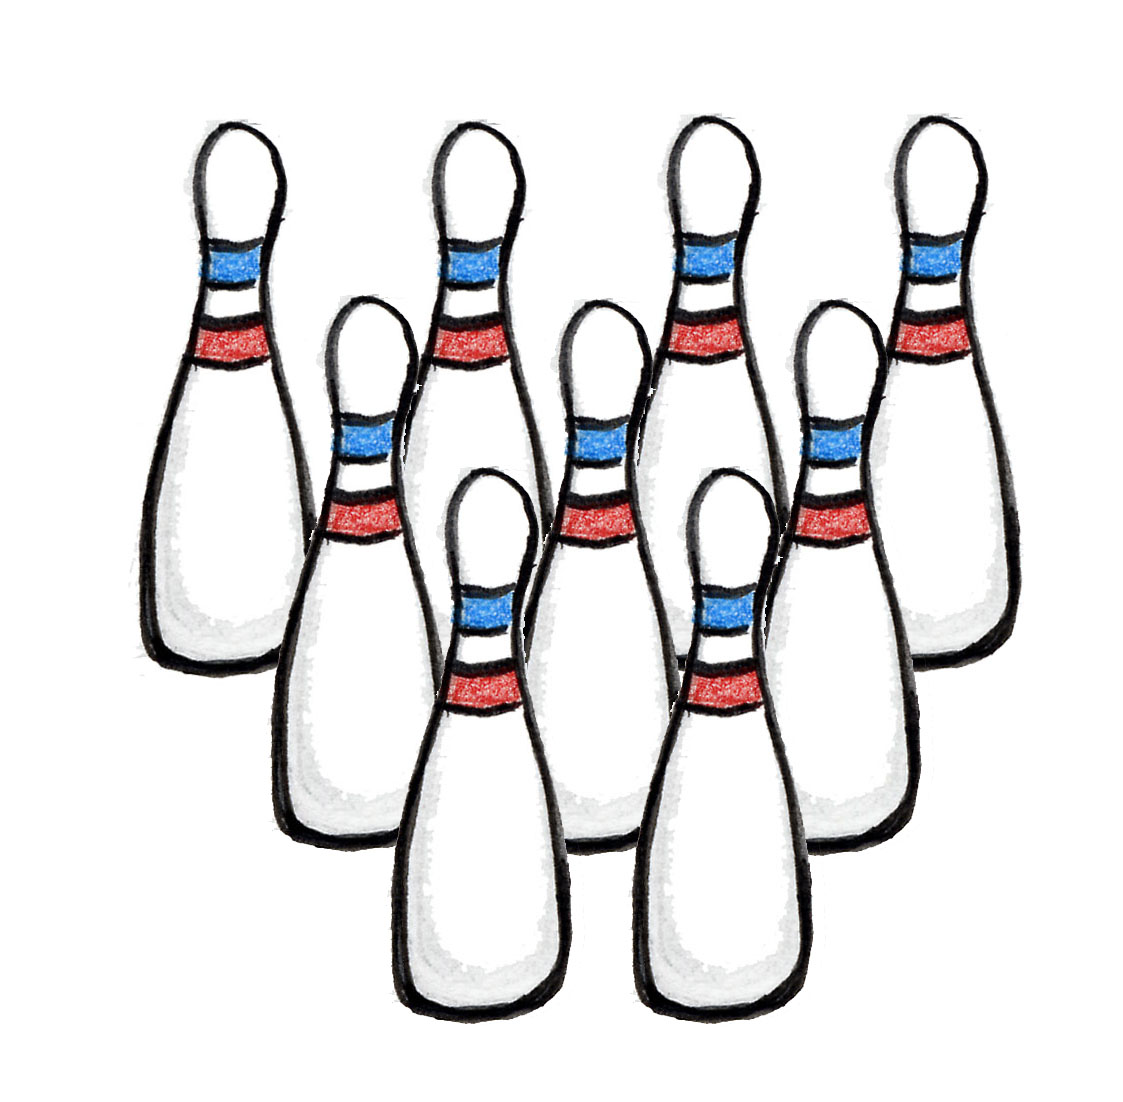 Bowling Pins Template - ClipArt Best